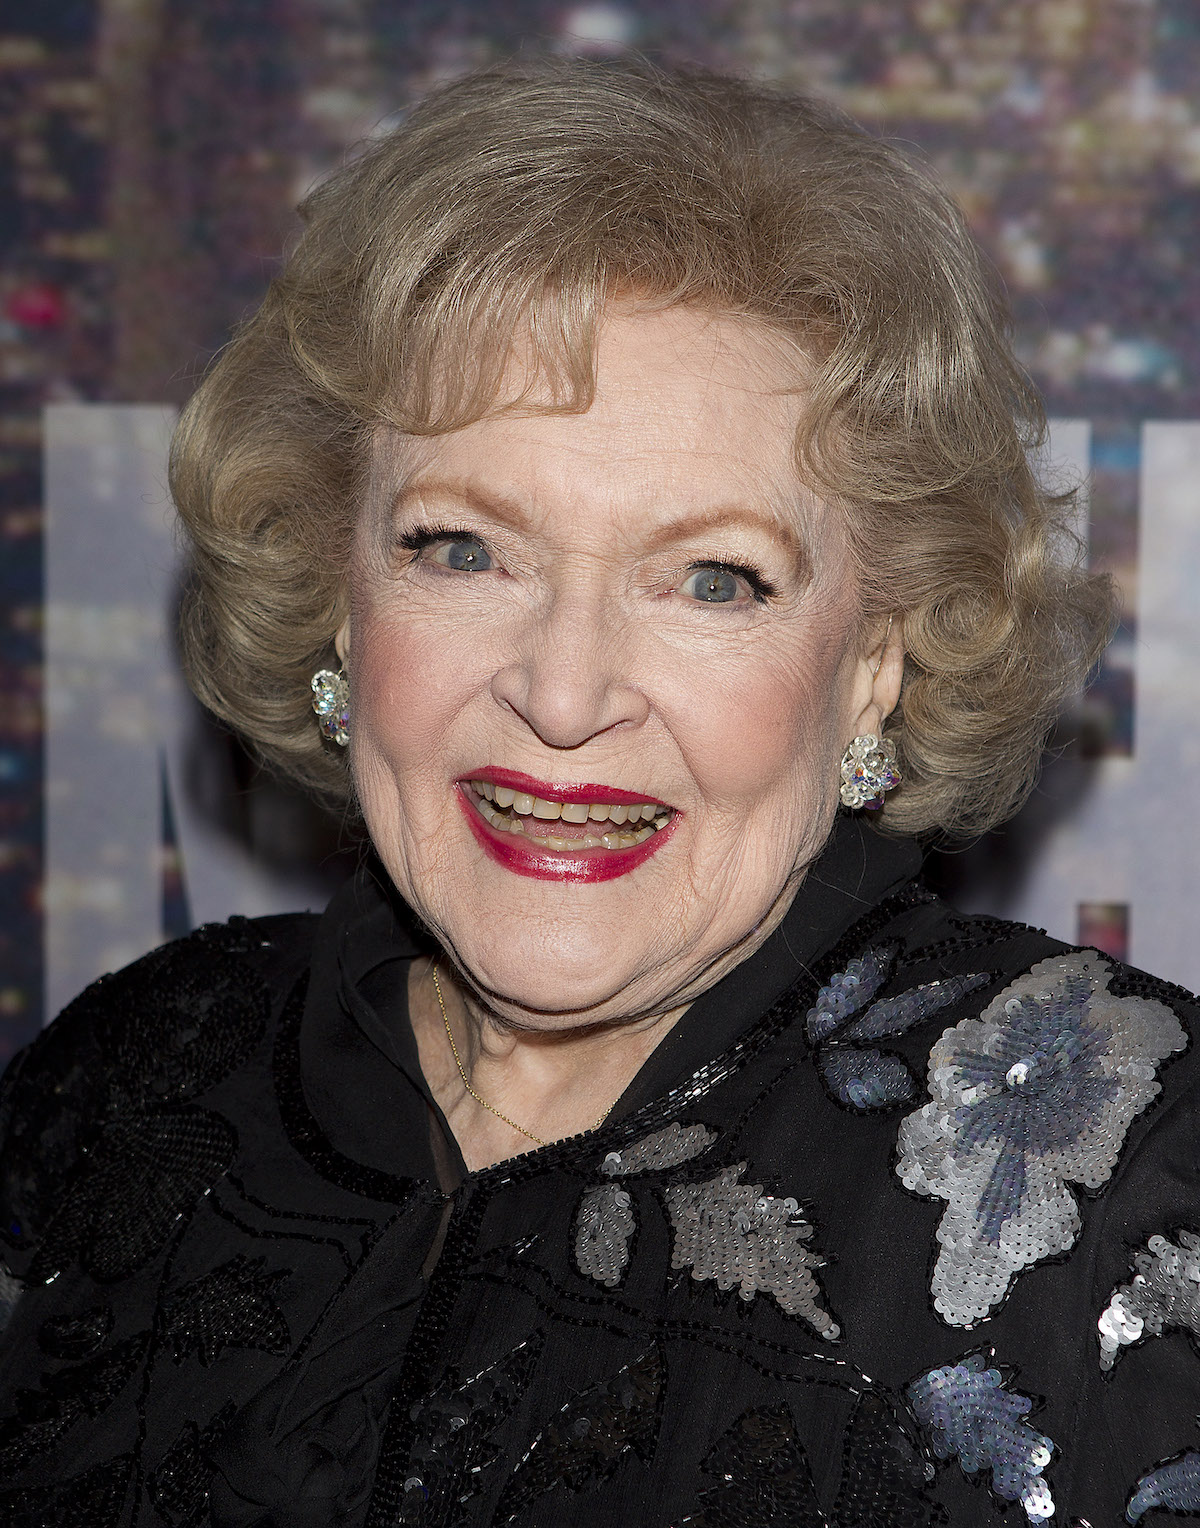 Actress Betty White arrives for the 40th Anniversary Saturday Night Live (SNL) broadcast in the Manhattan Borough of New York, February 15, 2015. REUTERS/Carlo Allegri